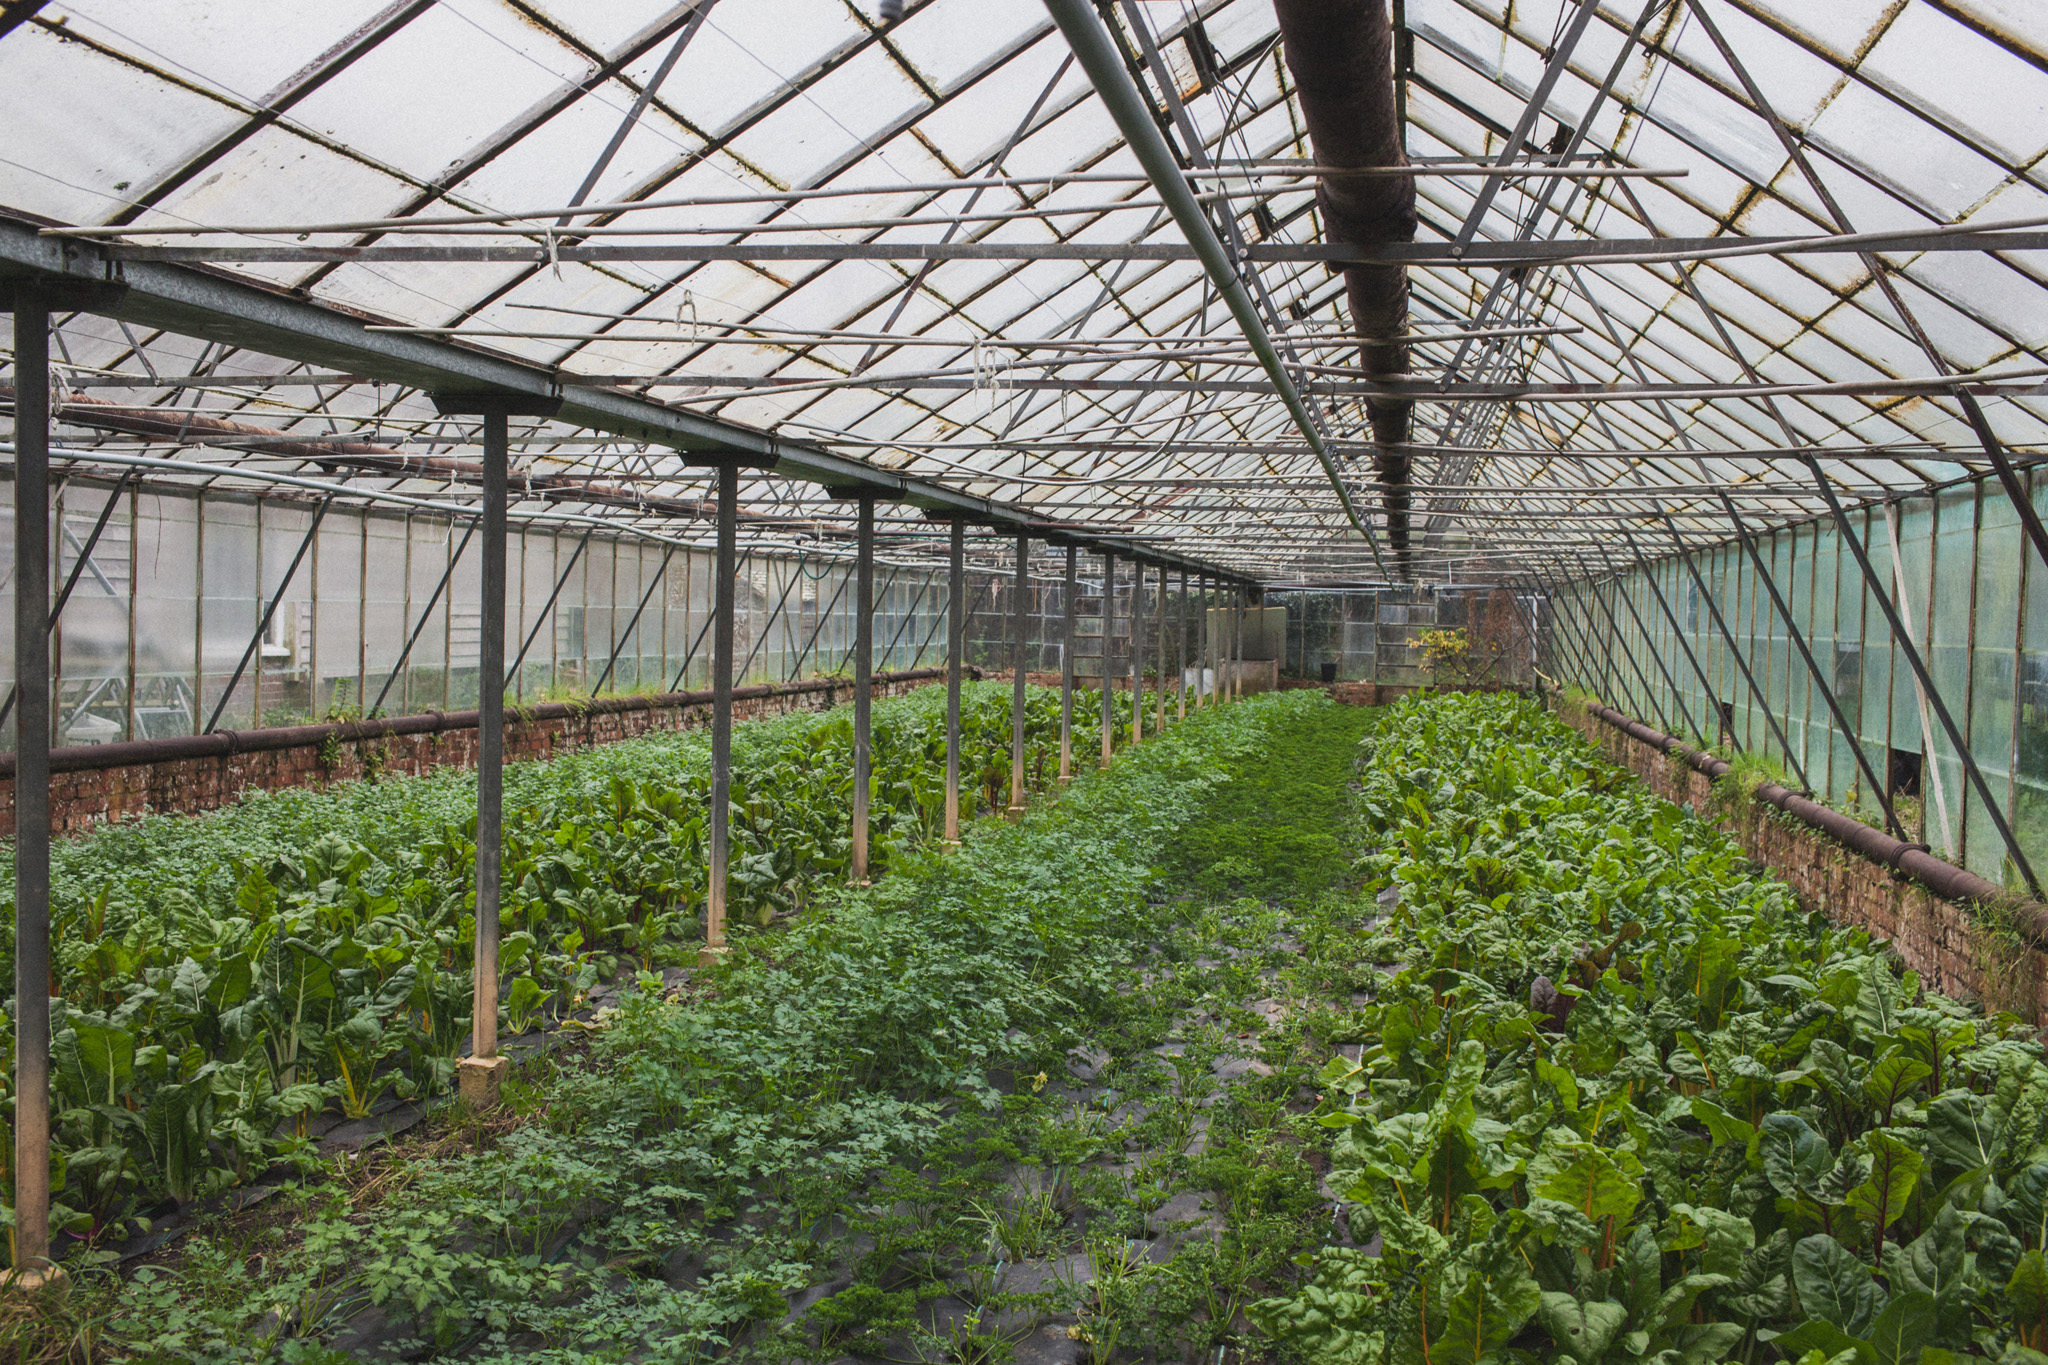 Barcombe Nurseries is an organic vegeatable box business in Sussex, photography by Emma Gutteridge